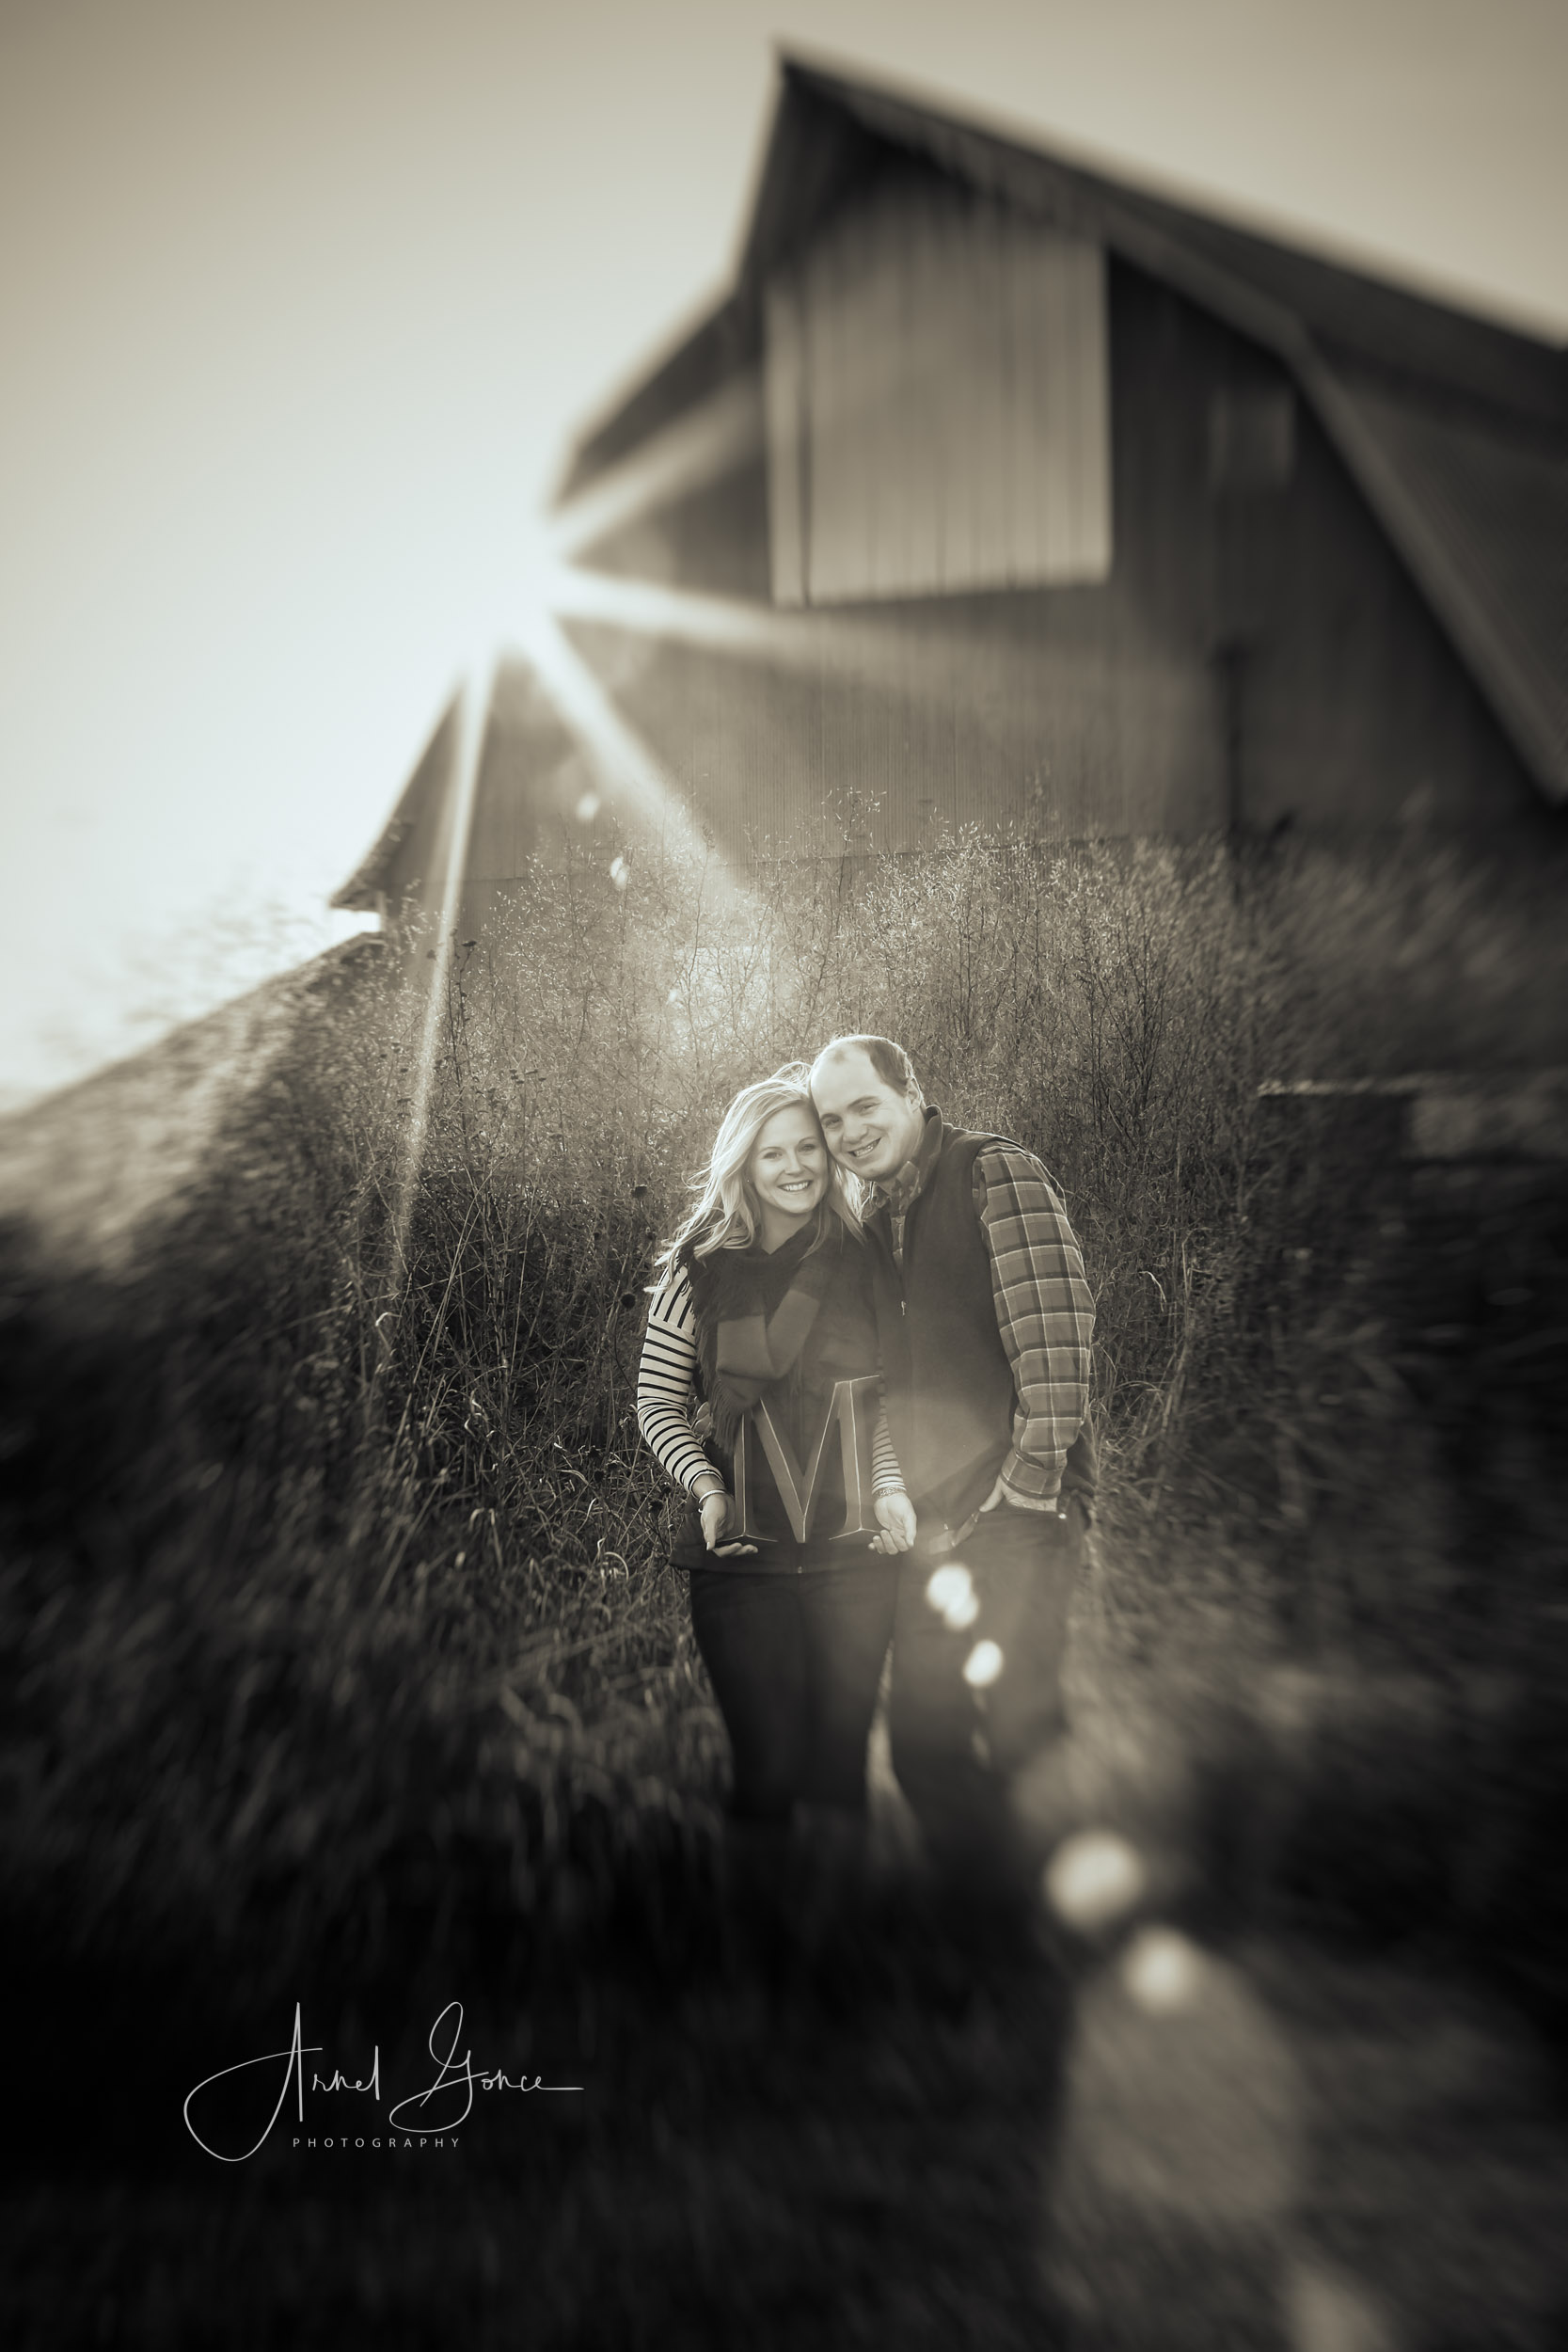 Starburst off of the barn during a photography engagement session in Edmond Oklahoma. The couple is holding the letter M to designate the last name.